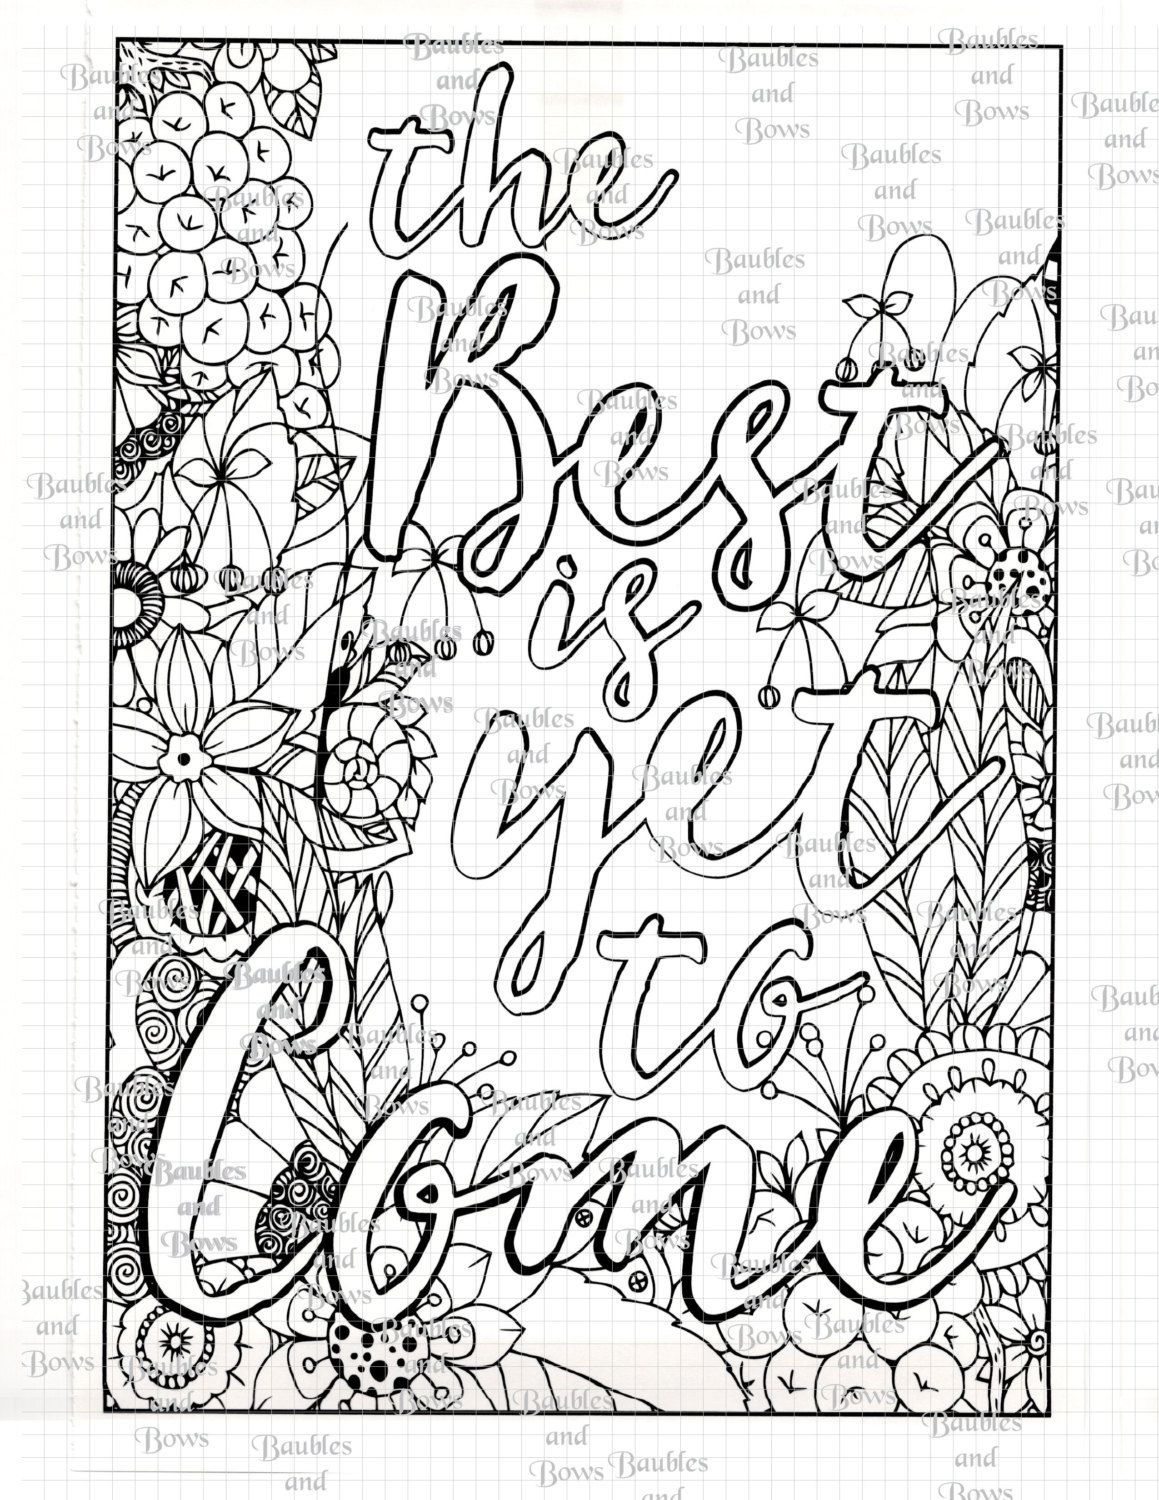 Best mandala coloring pages - Best Is Yet To Come Printable Adult Mandala Coloring By Sewlacee